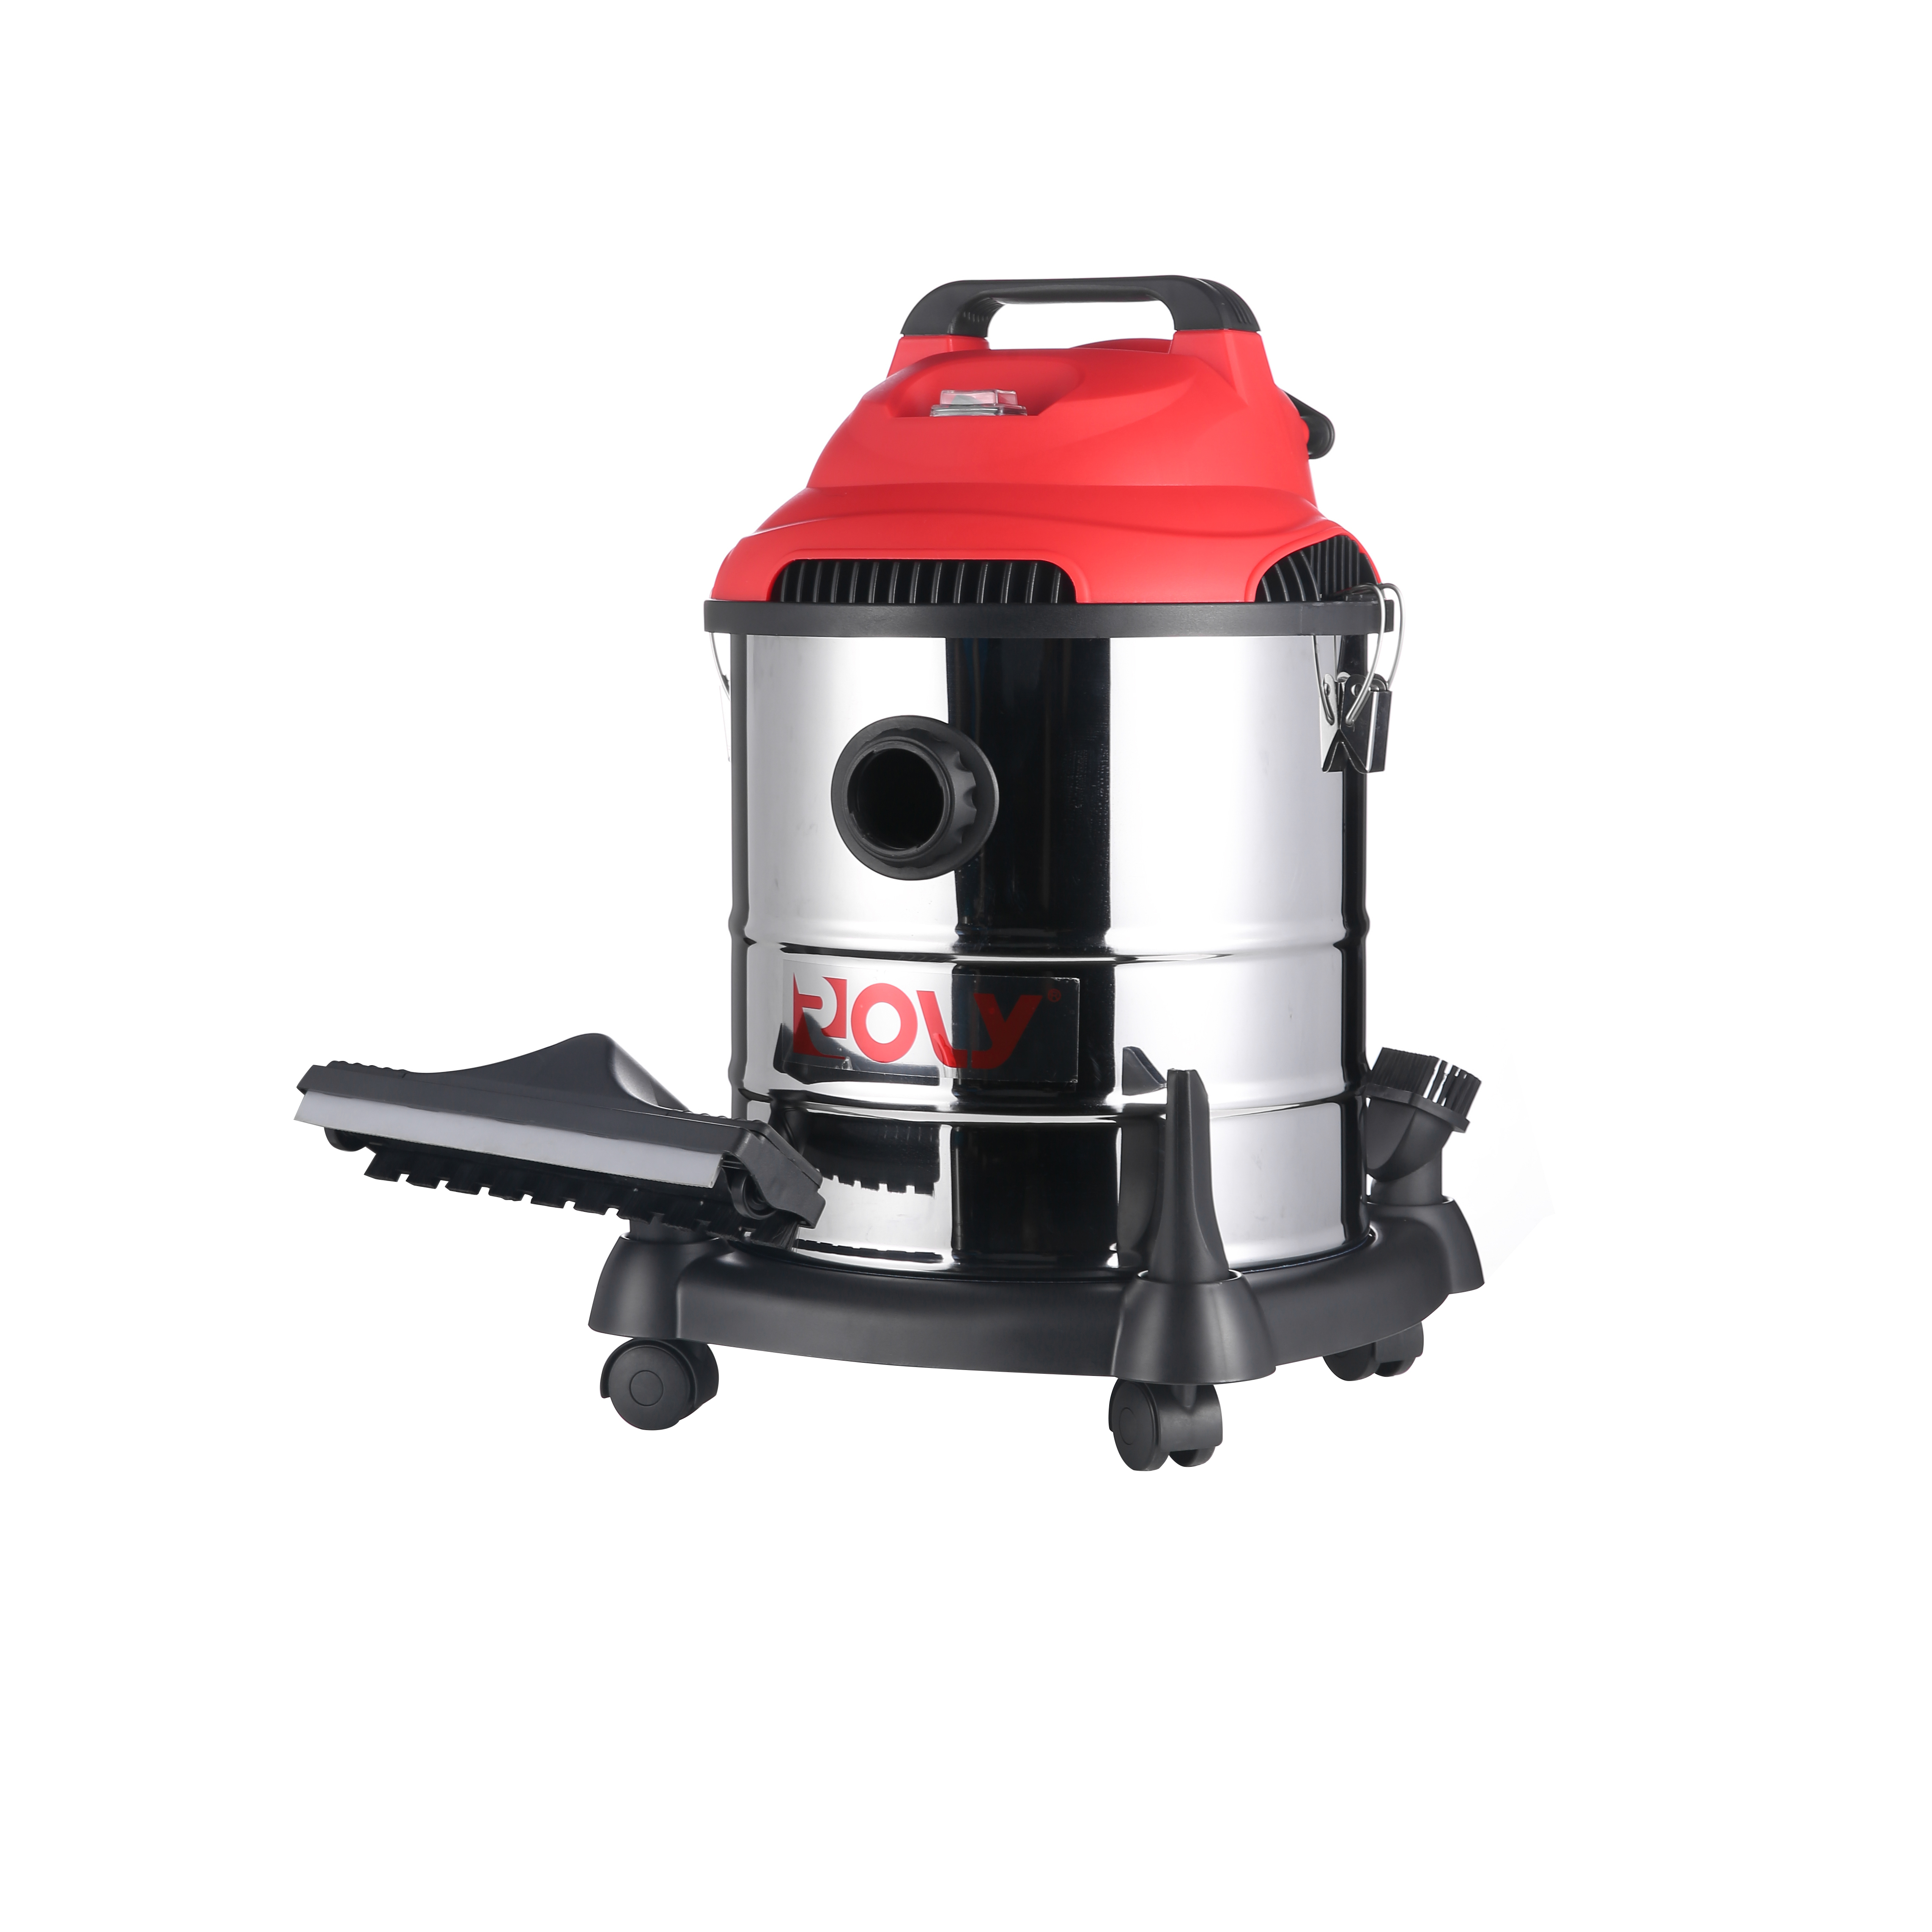 RL128 2020 portable dust sweeper small office desktop clean machine table mini vacuum cleaner